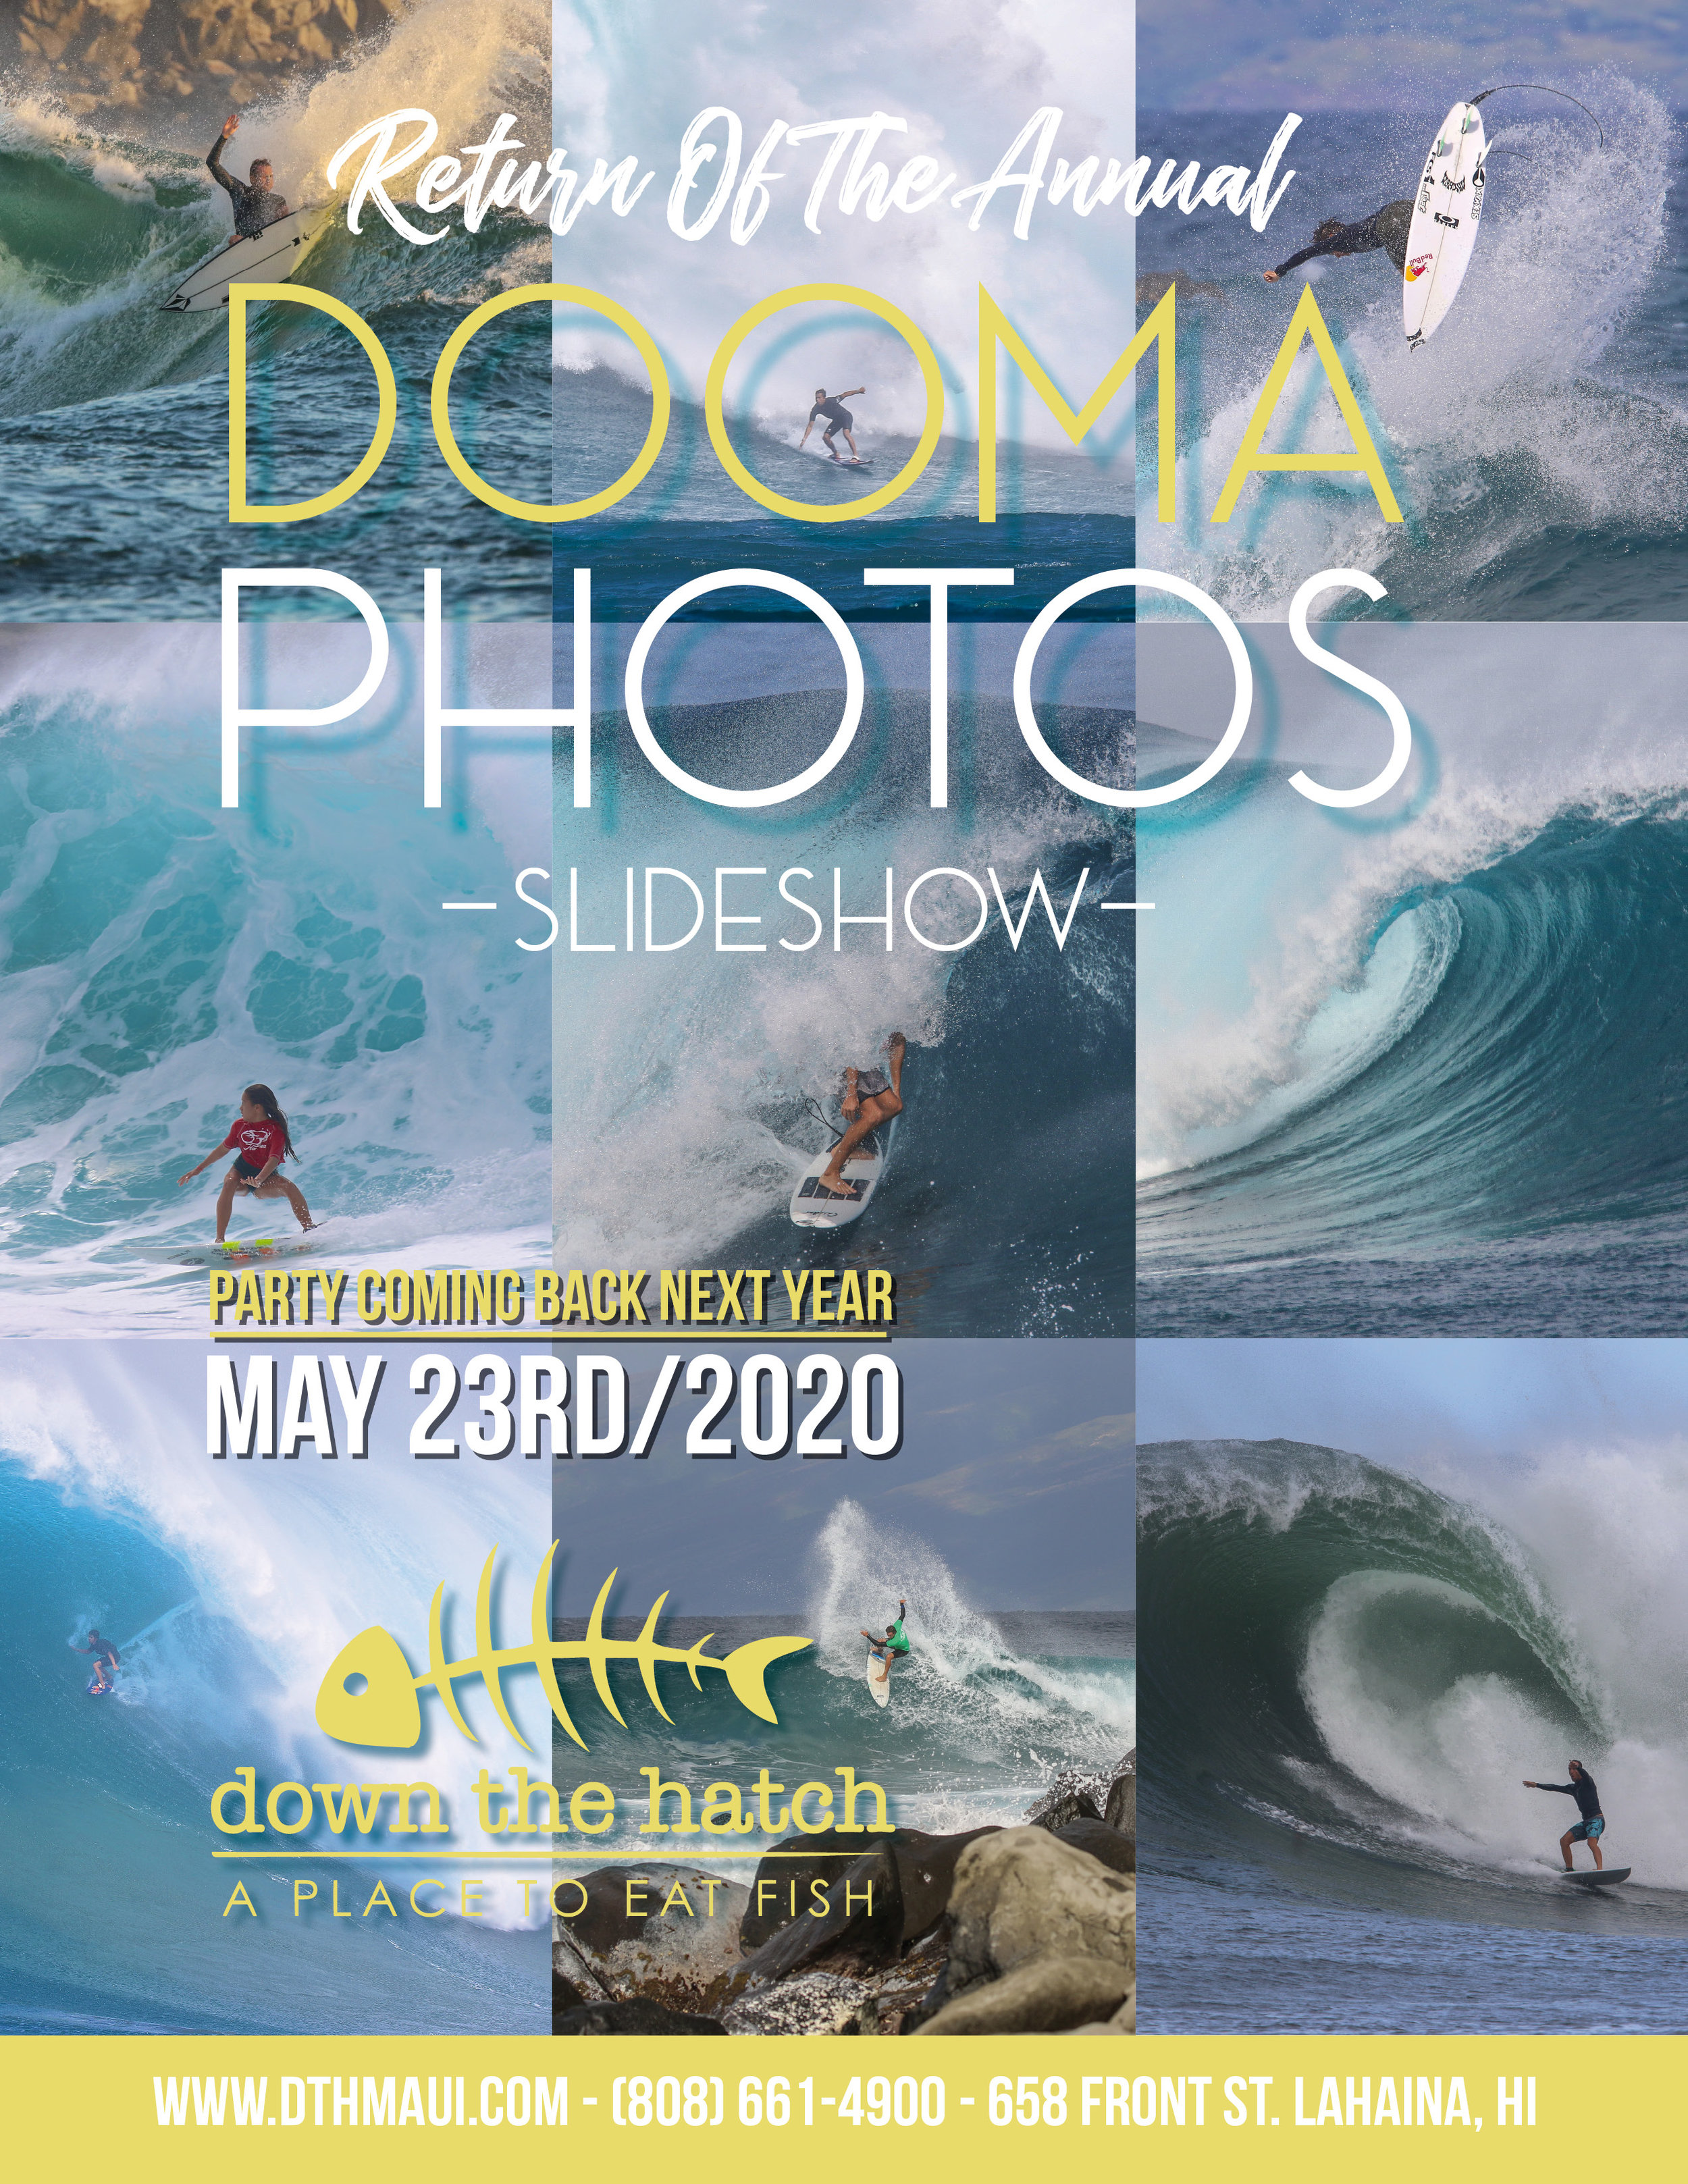 05-15 DTH DOOMA PHOTOS ANNOUNCEMENT FLYER 83.jpg